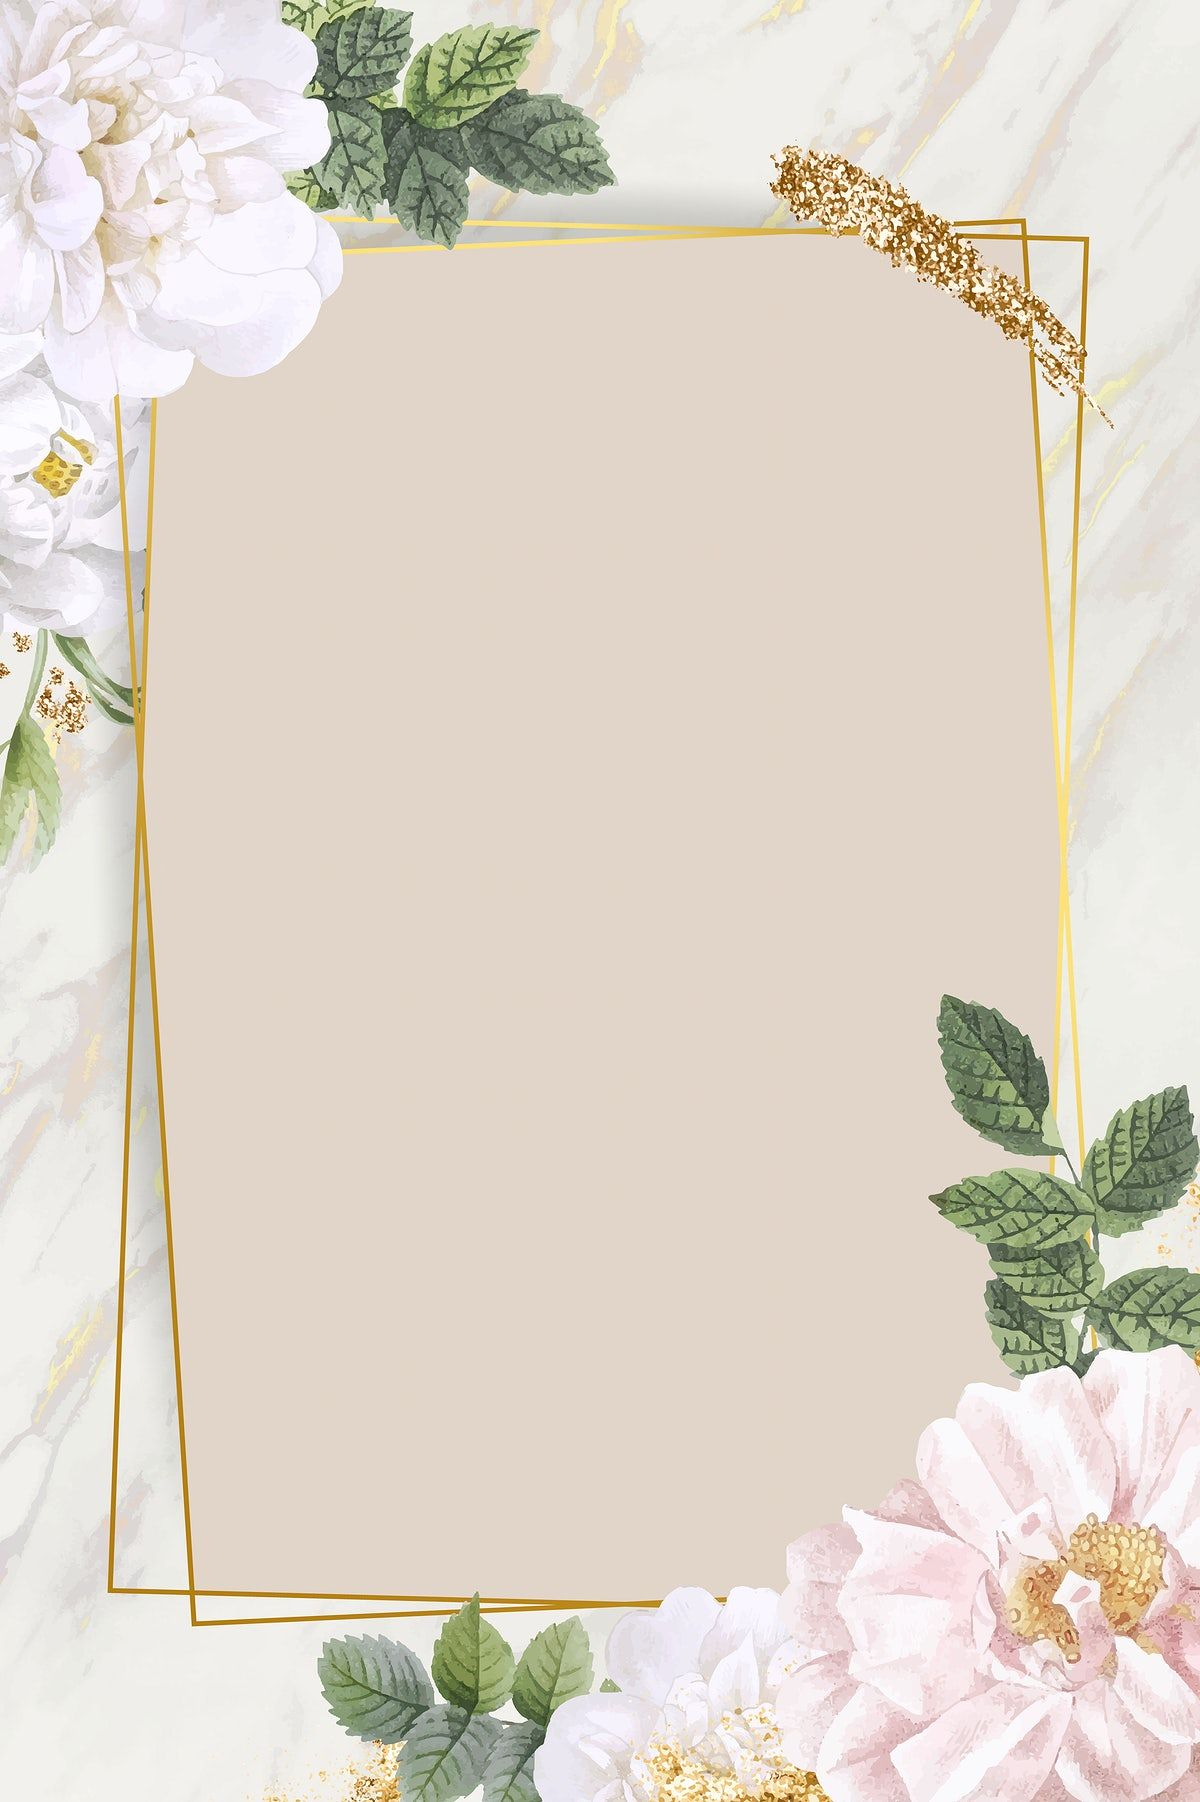 Download Premium Vector Of Rectangle Rose Frame On Marble Background In 2020 Floral Wallpaper Phone Rose Frame Flower Background Wallpaper